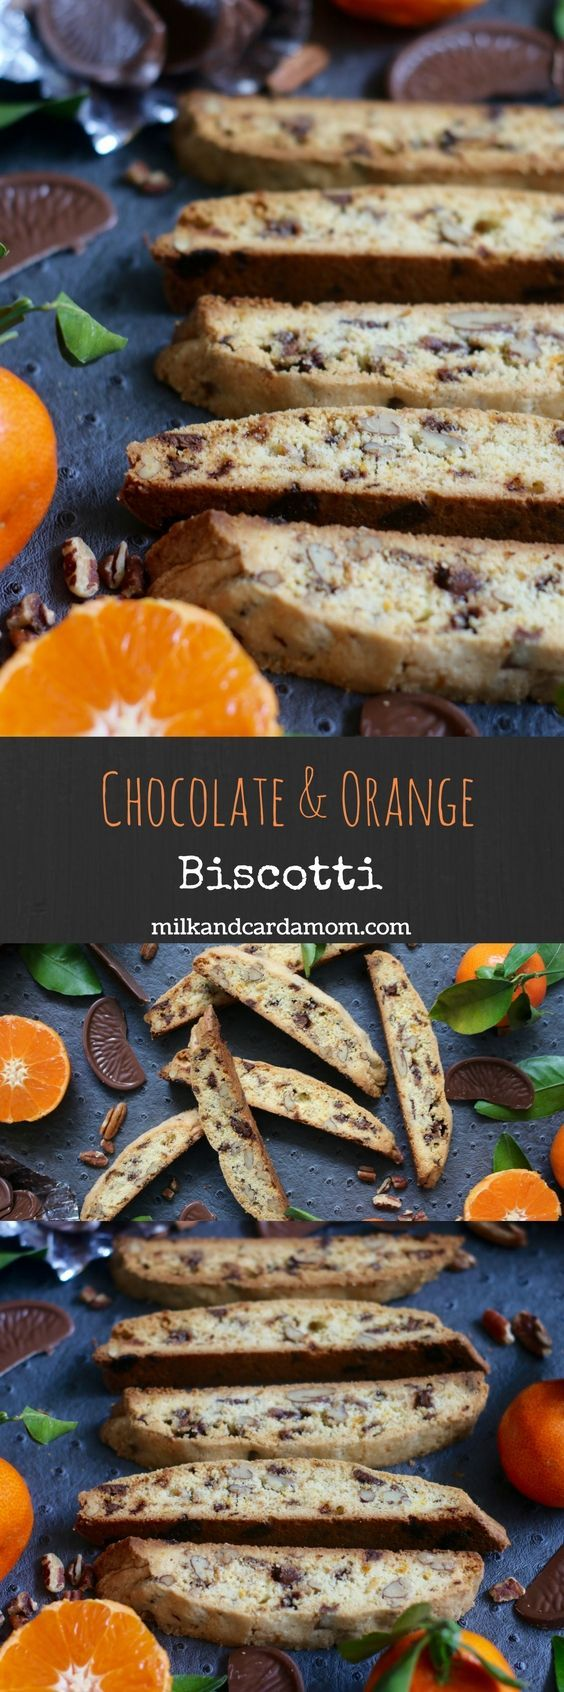 Crunchy and buttery orange and chocolate biscotti - perfect with your morning coffee! Super easy recipe!